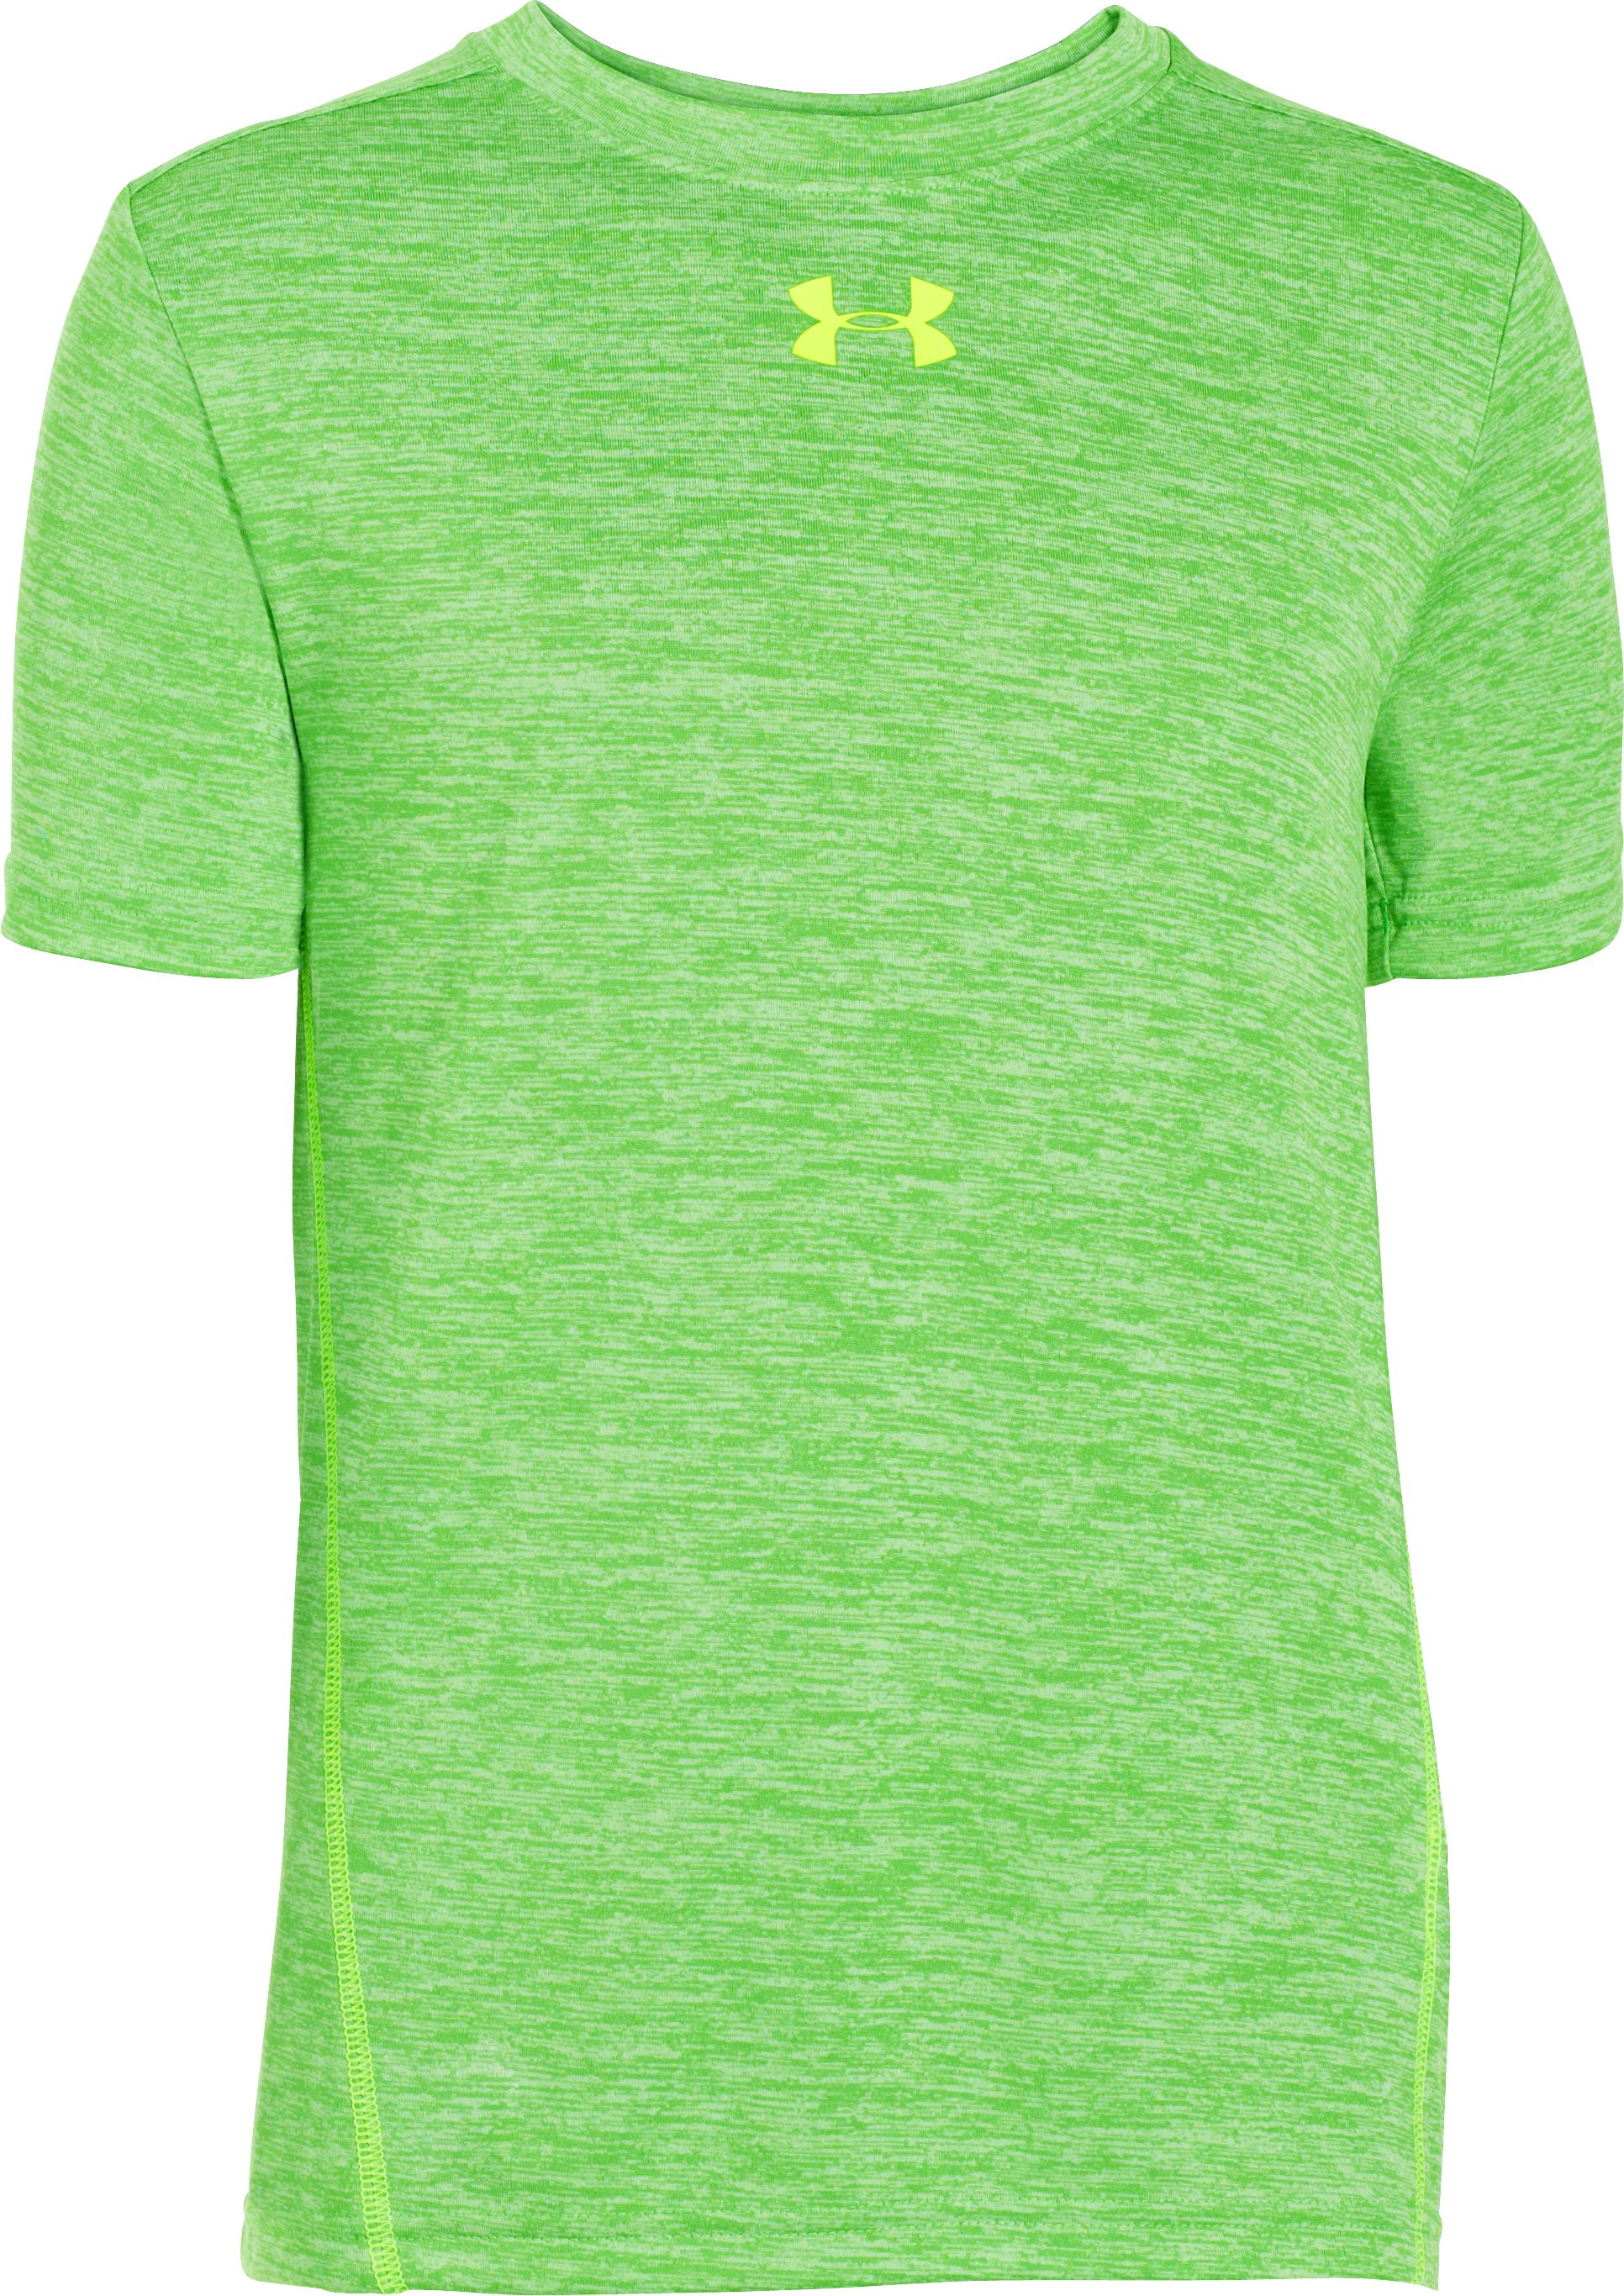 Boys' UA Tech™ Twist Short Sleeve T-Shirt, Lizard